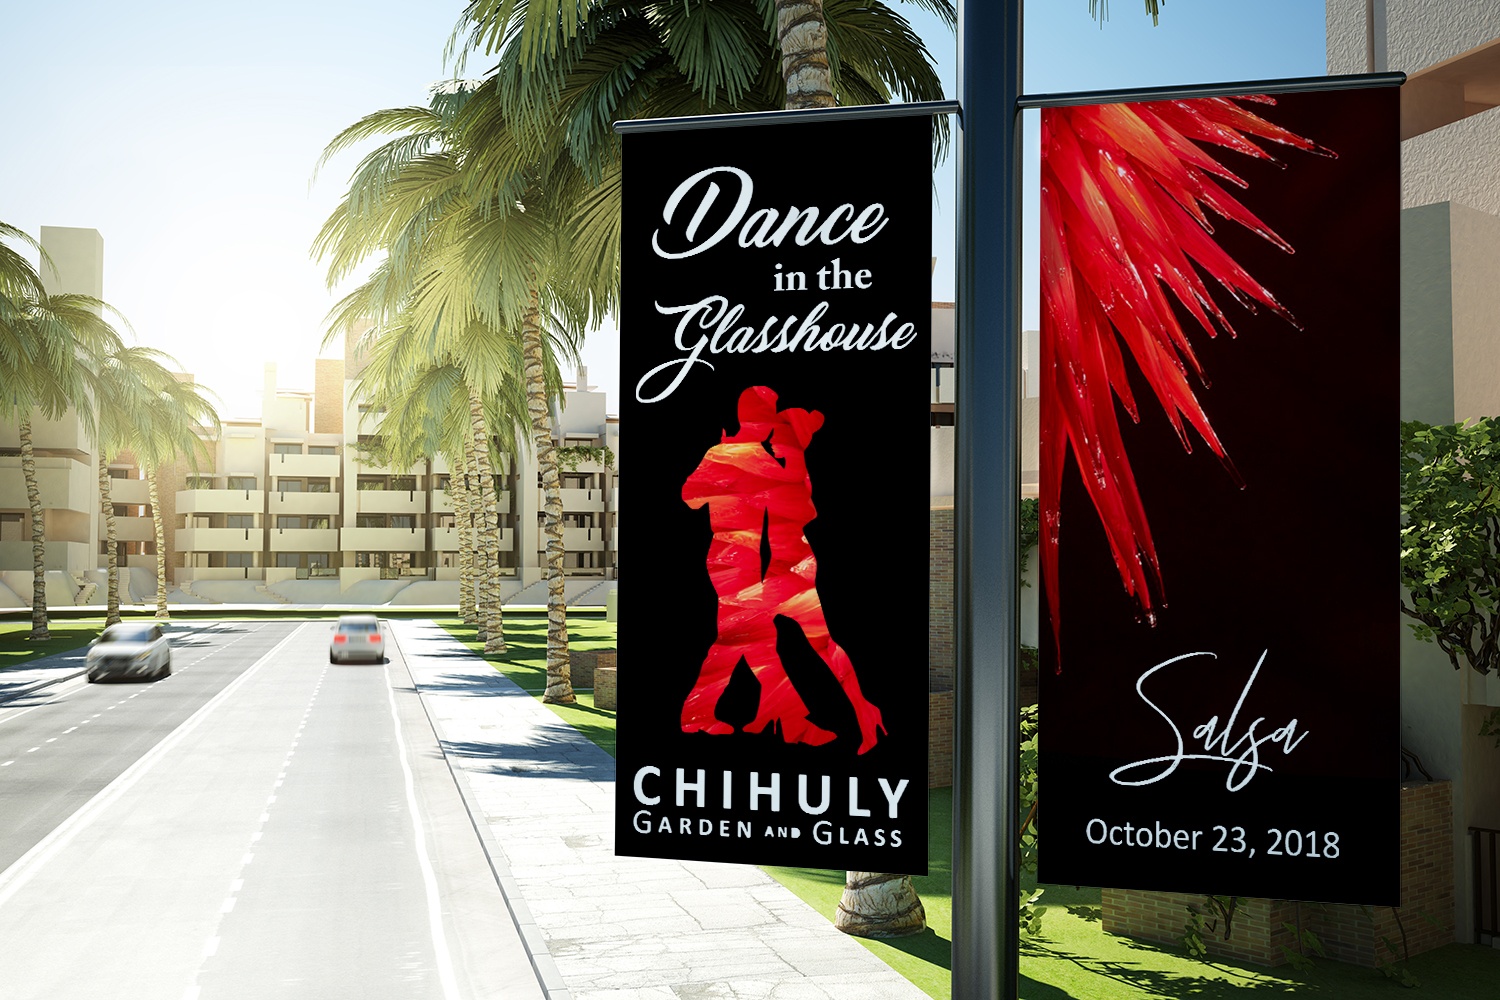 chihuly-salsafinal.jpg